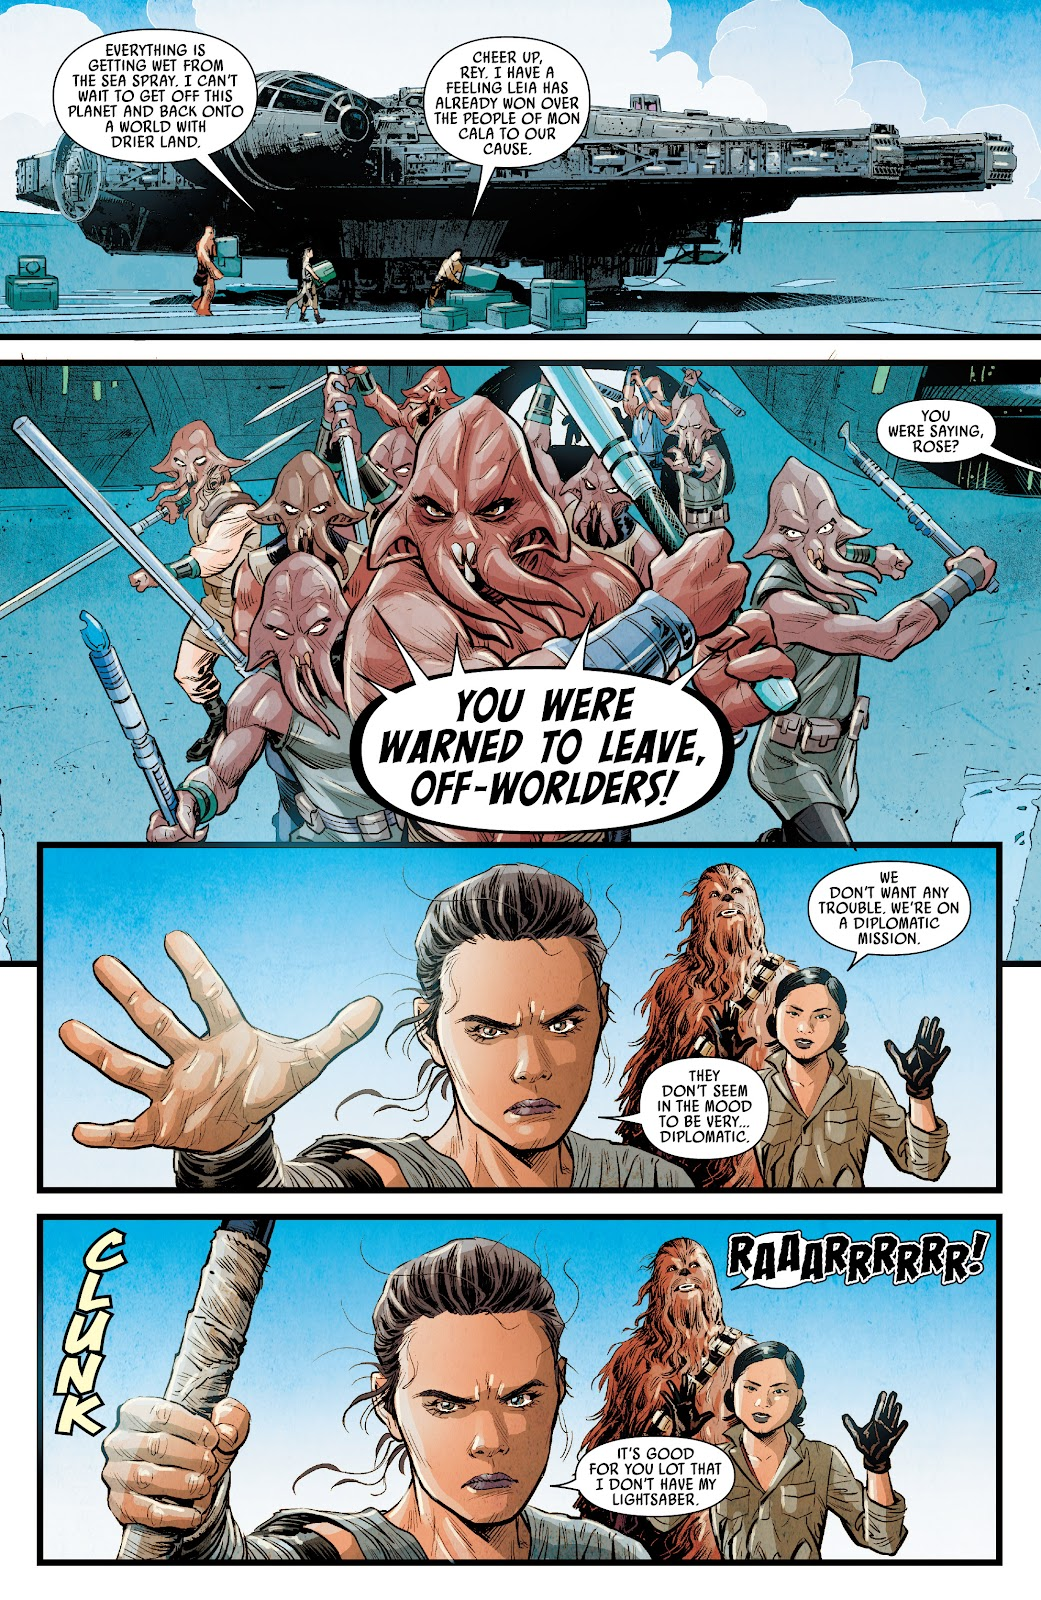 Read Online Journey To Star Wars The Rise Of Skywalker Allegiance Comic Issue 2